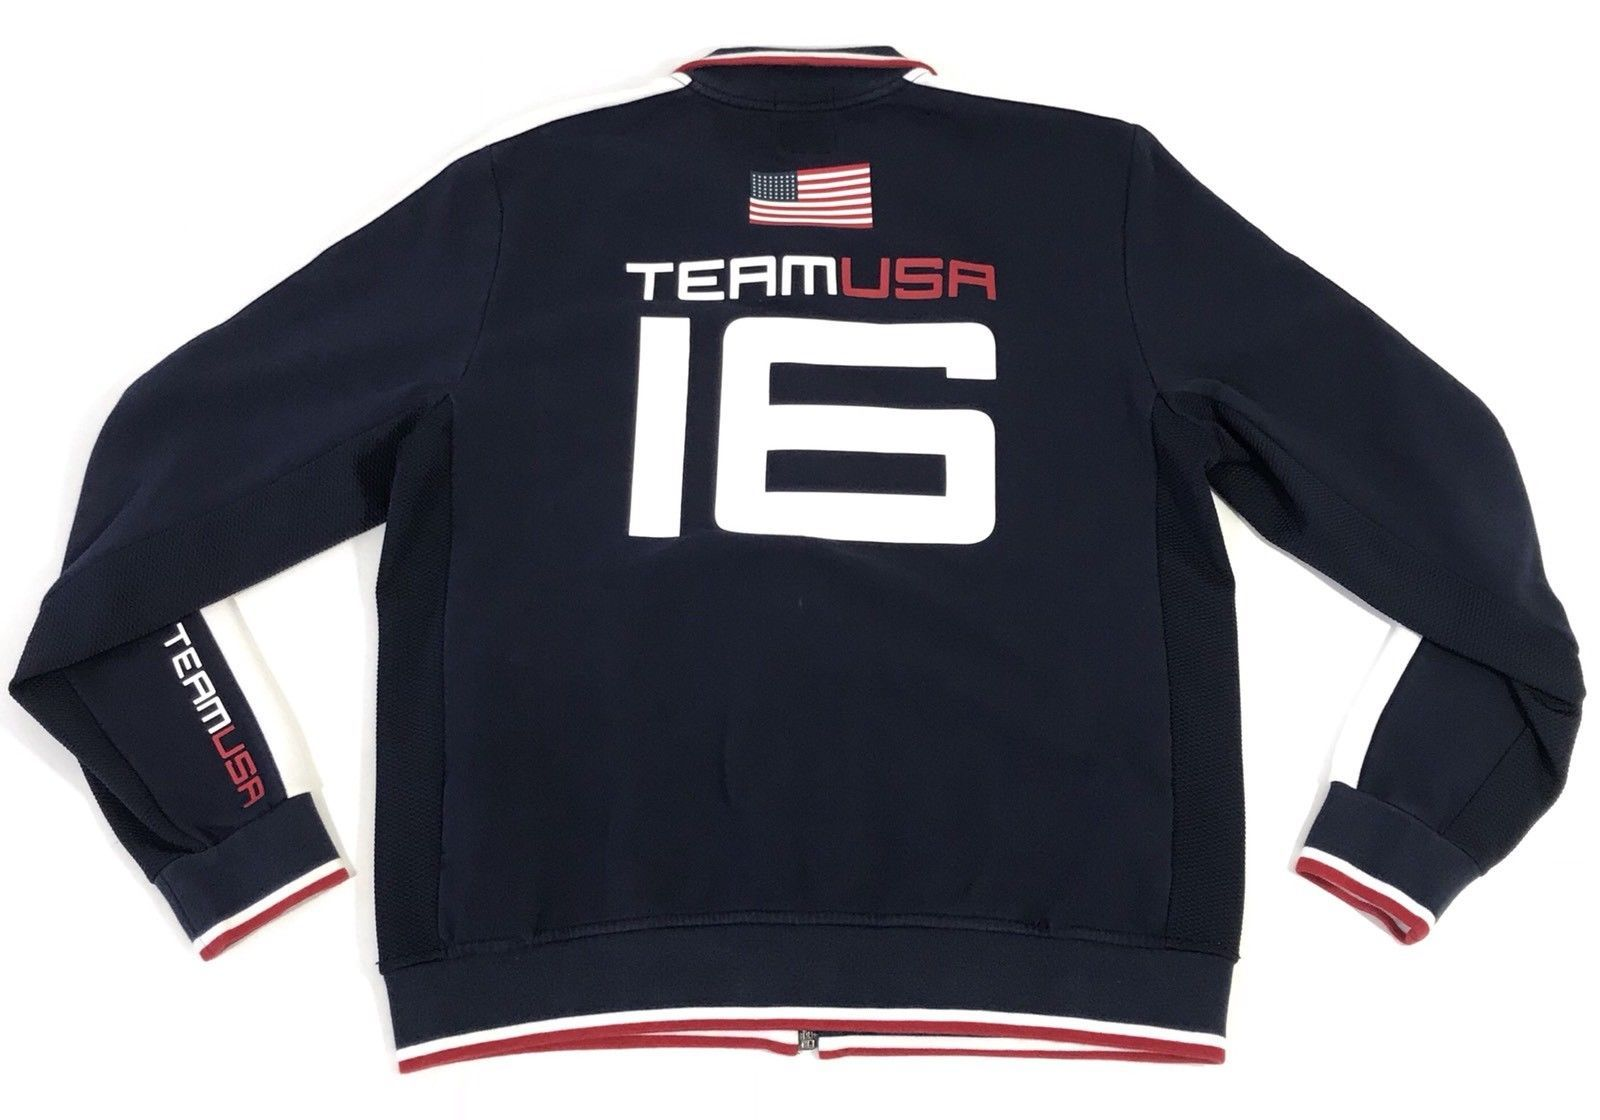 26aff59c4bc POLO Ralph Lauren USA Olympic Team Jacket and similar items. 57